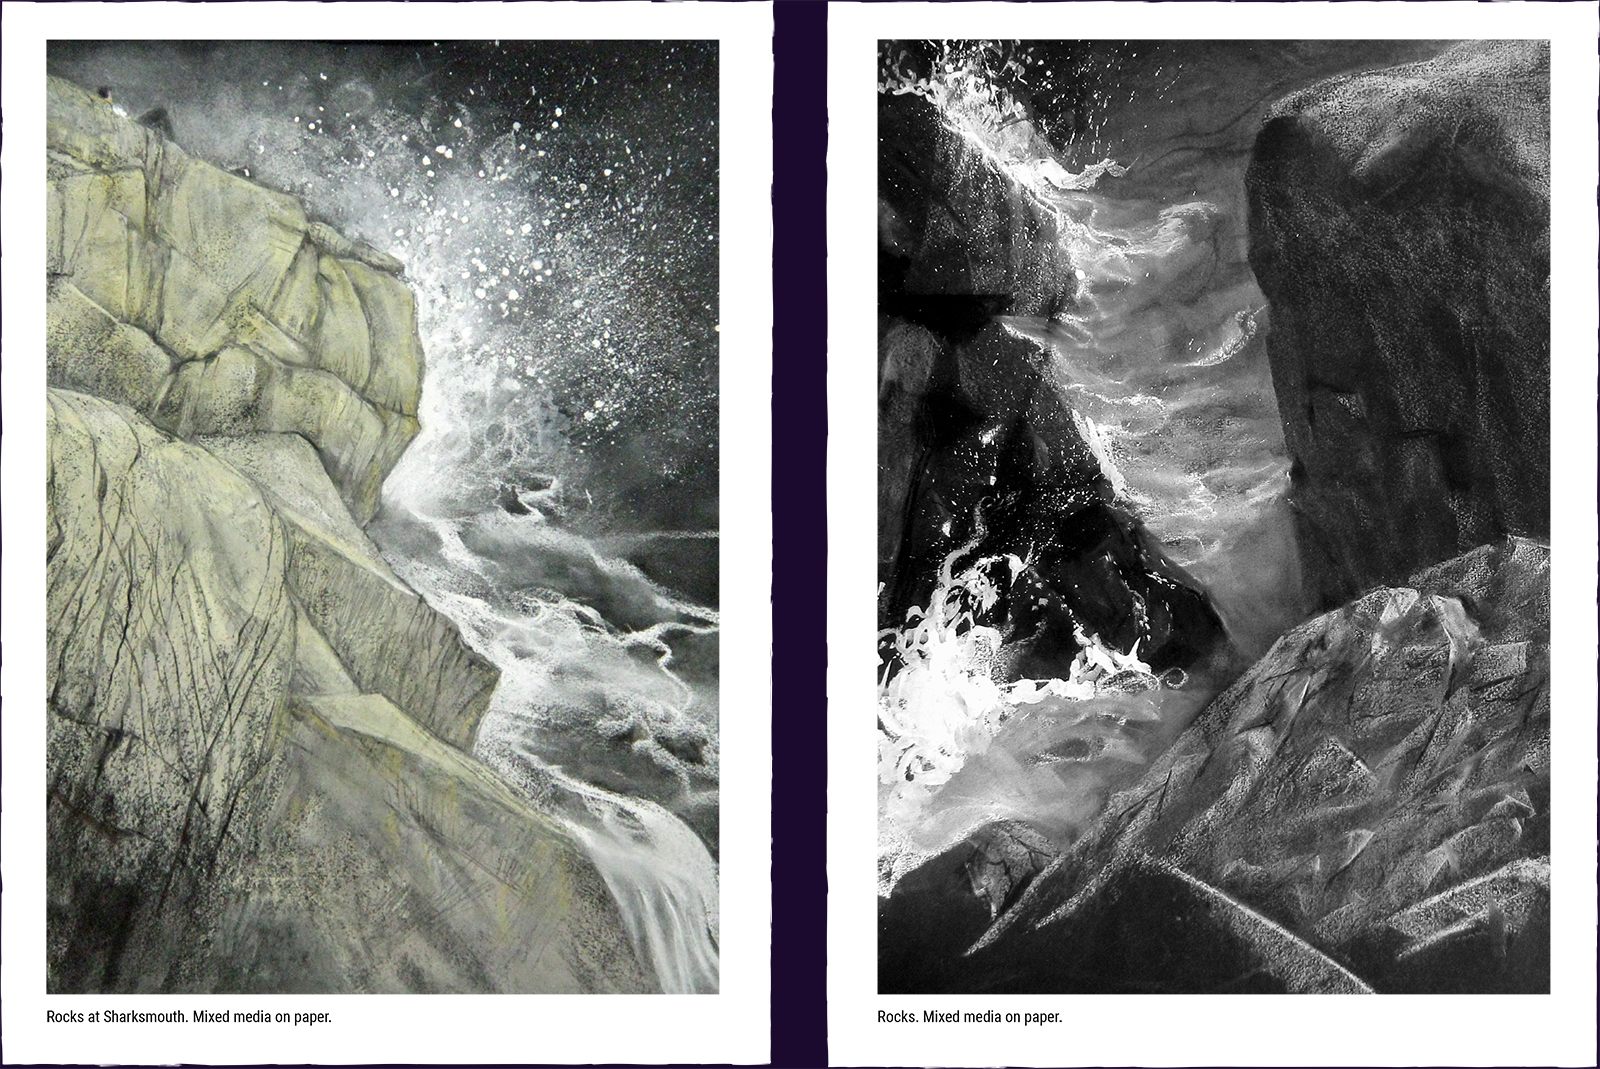 Two landscape paintings. (1) Rocks at Sharksmouth. Mixed media on paper. (2) Rocks. Mixed media on paper.